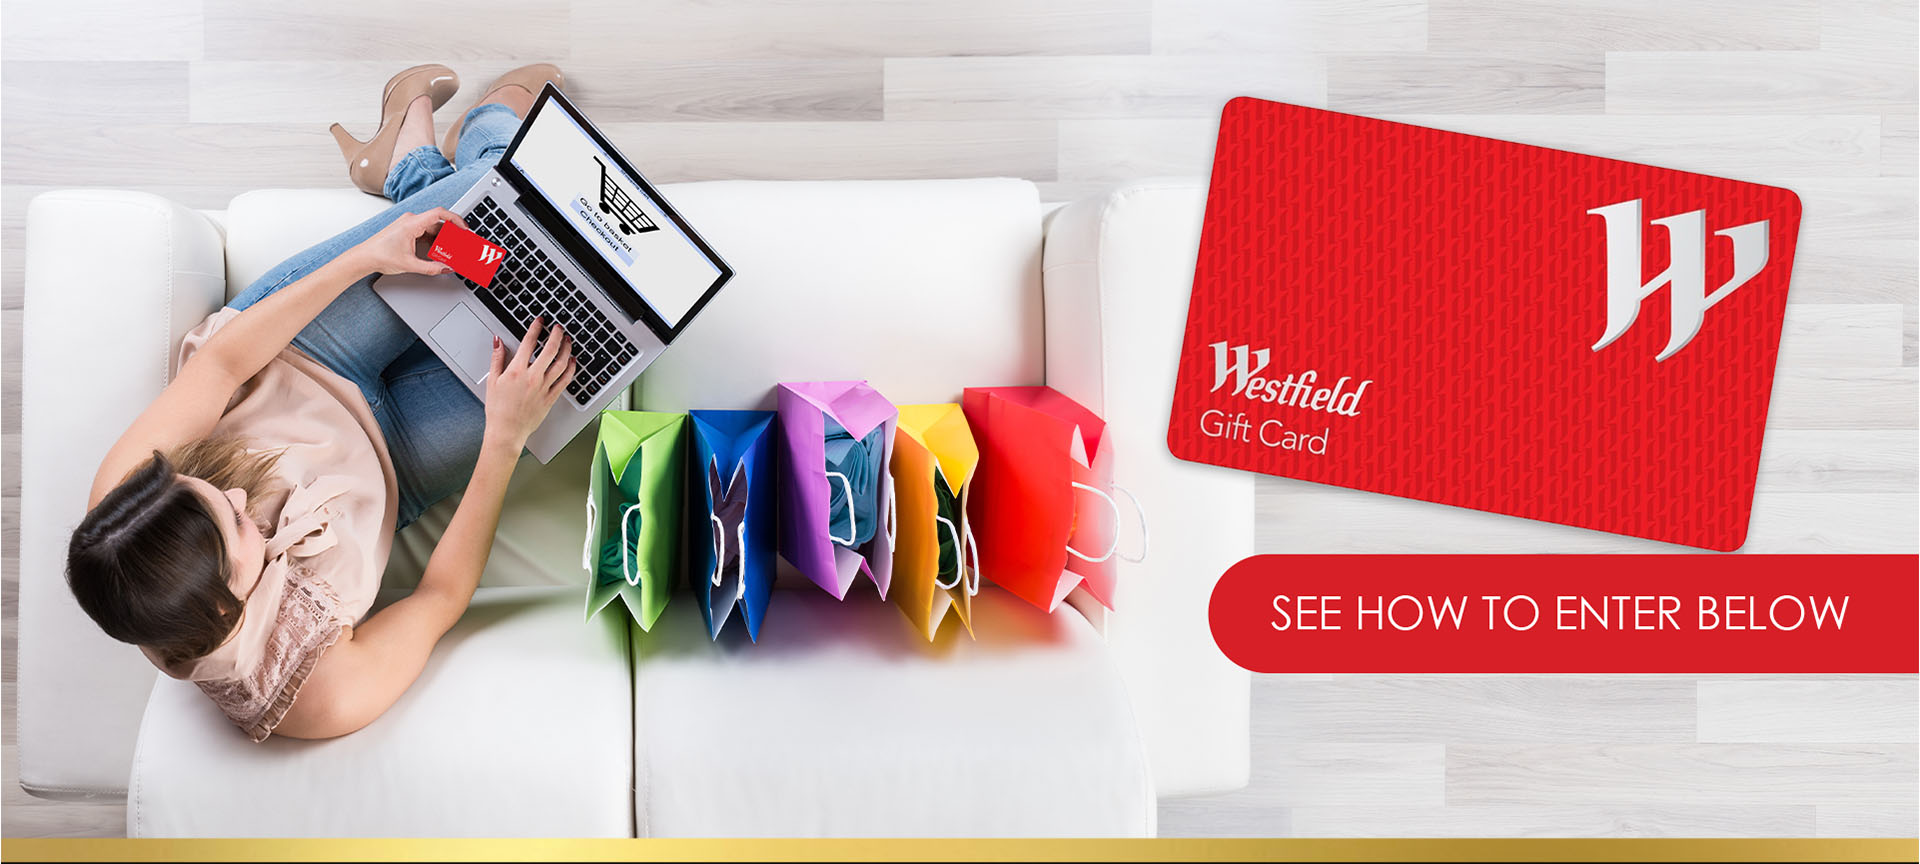 heritage competition UPDATED to voucher Header Image - Westfield Gift Card Competition